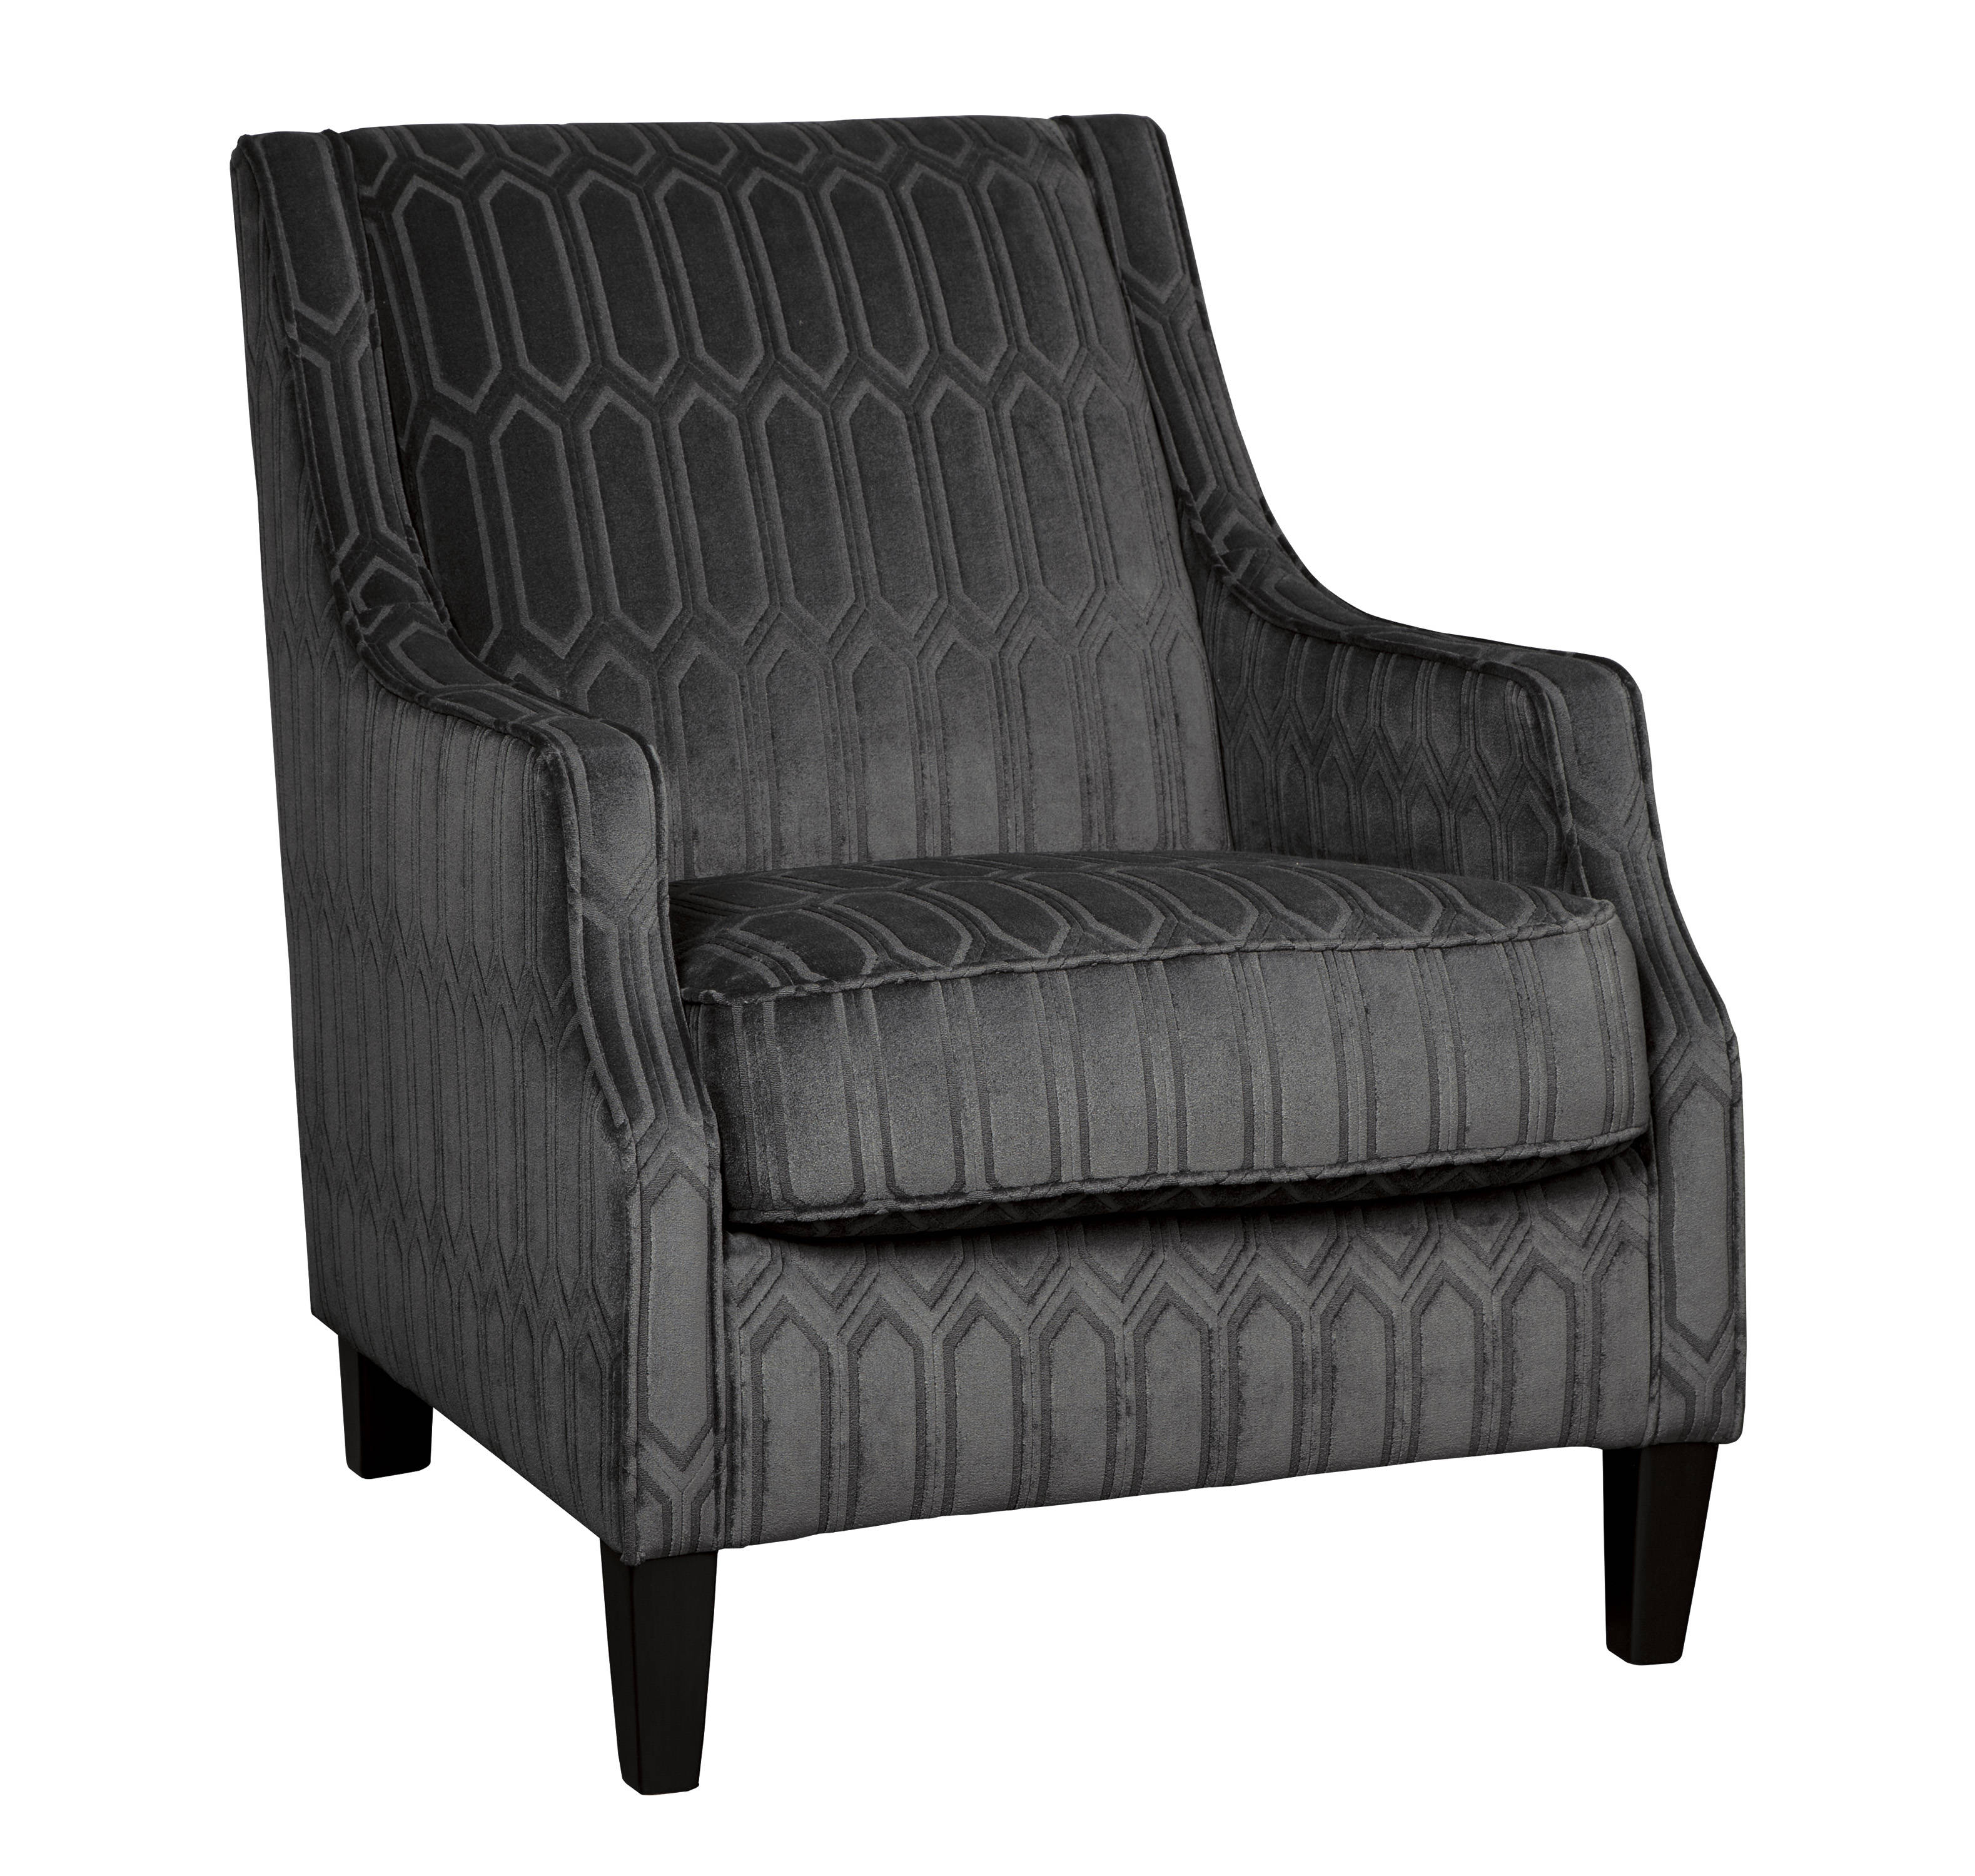 Ashley Furniture Entwine Graphite Accent Chair The Classy Home